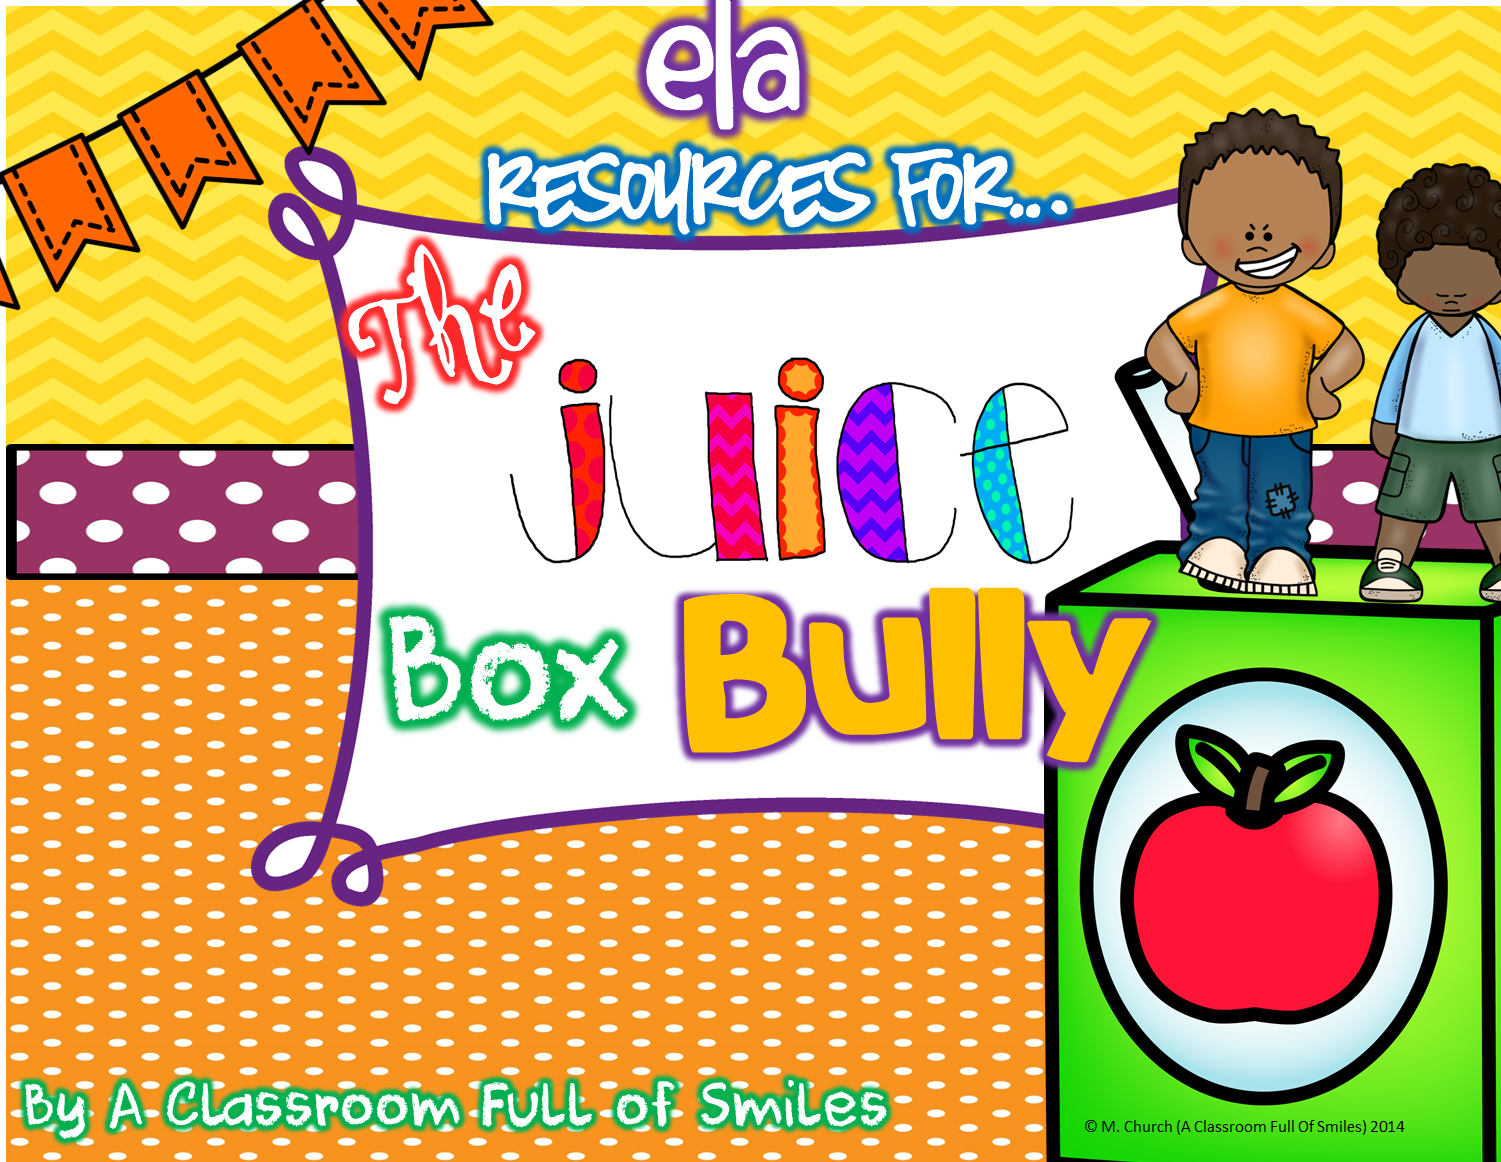 http://www.teacherspayteachers.com/Product/ELA-Resources-for-The-Juice-Box-Bully-Craftivity-Included-1289511